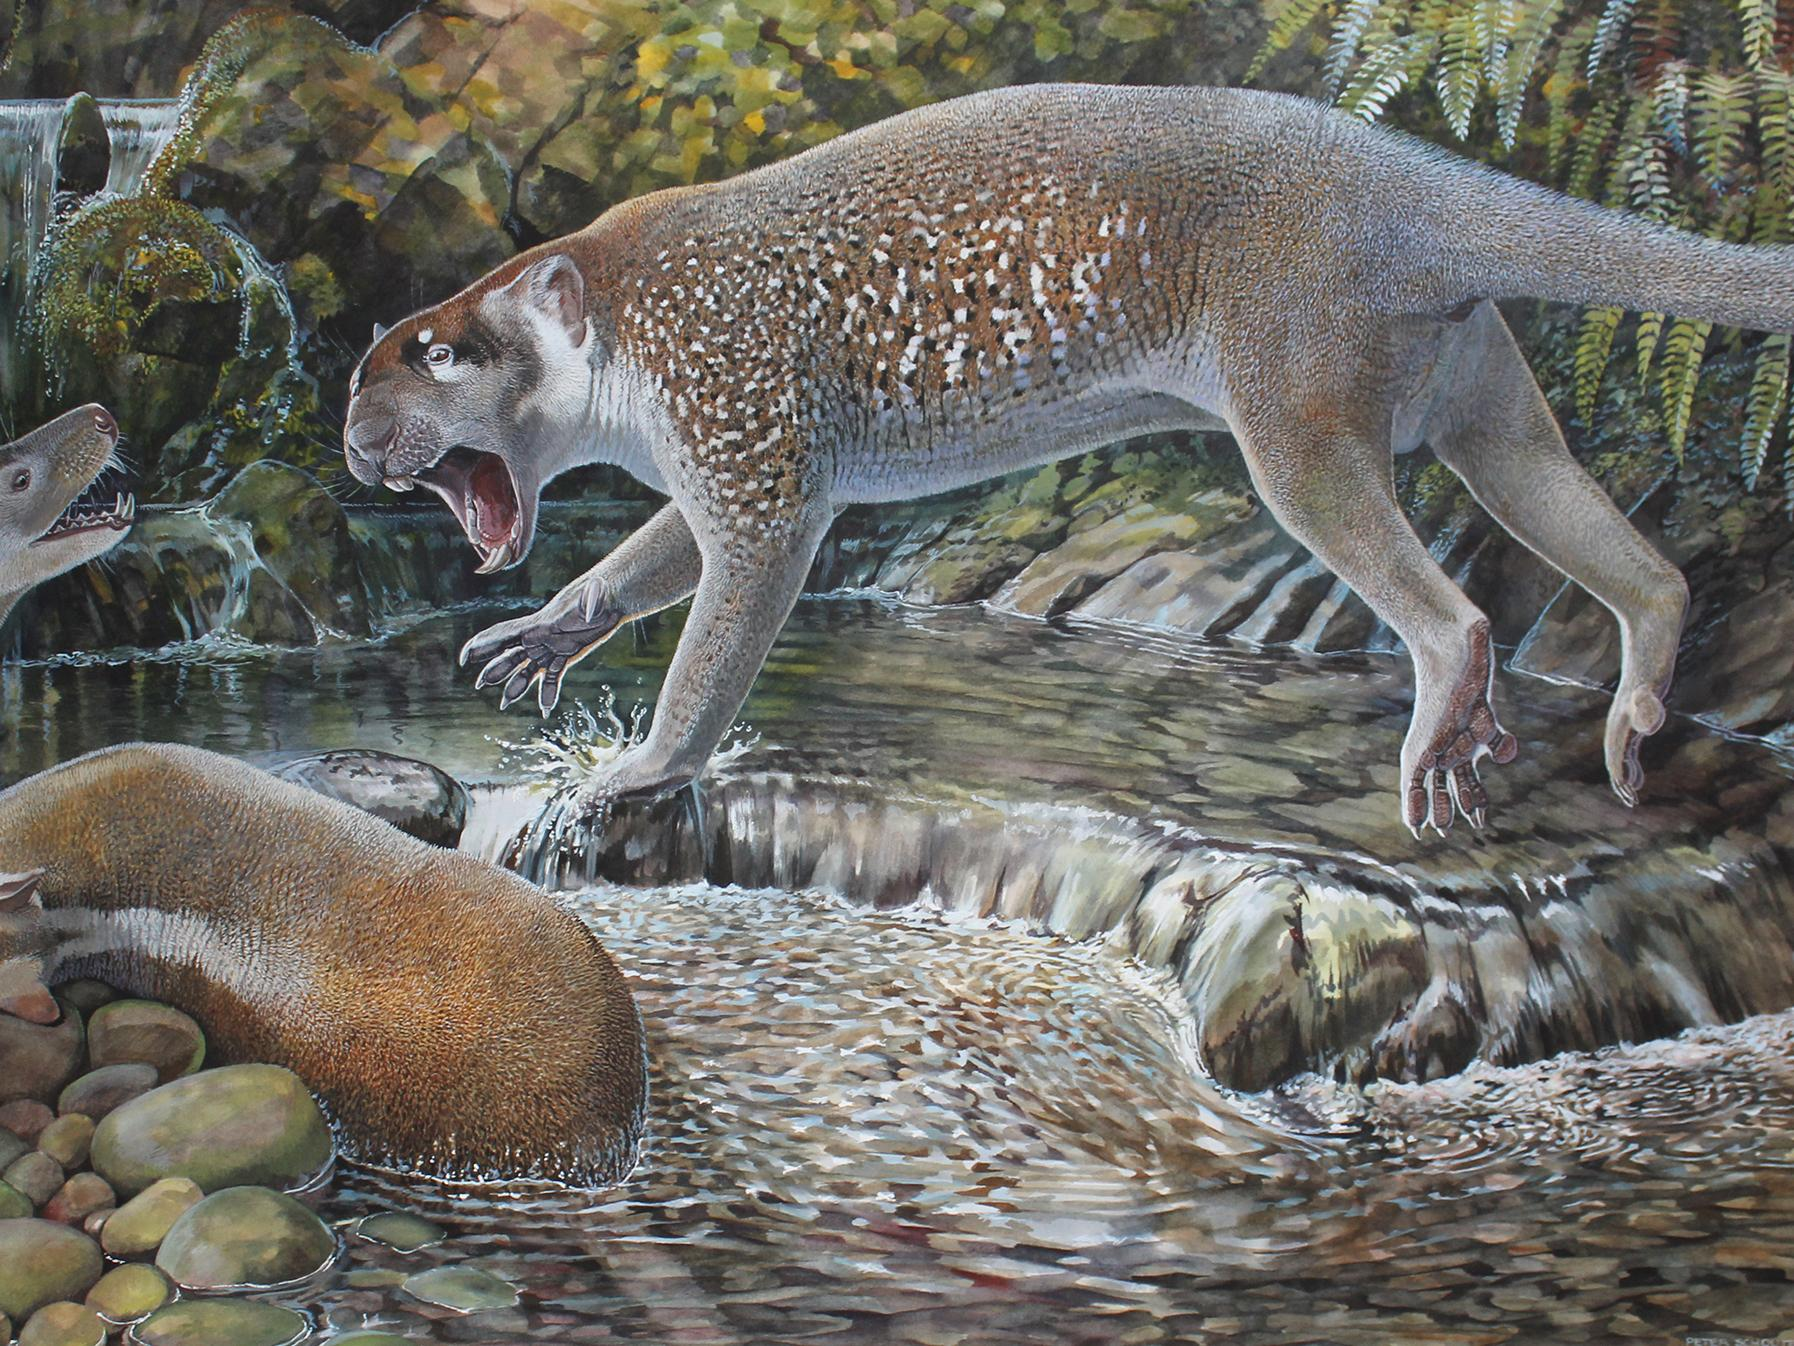 Pet Otter Australia Extinct Kangaroo Like Lion Discovered In Australia The Independent